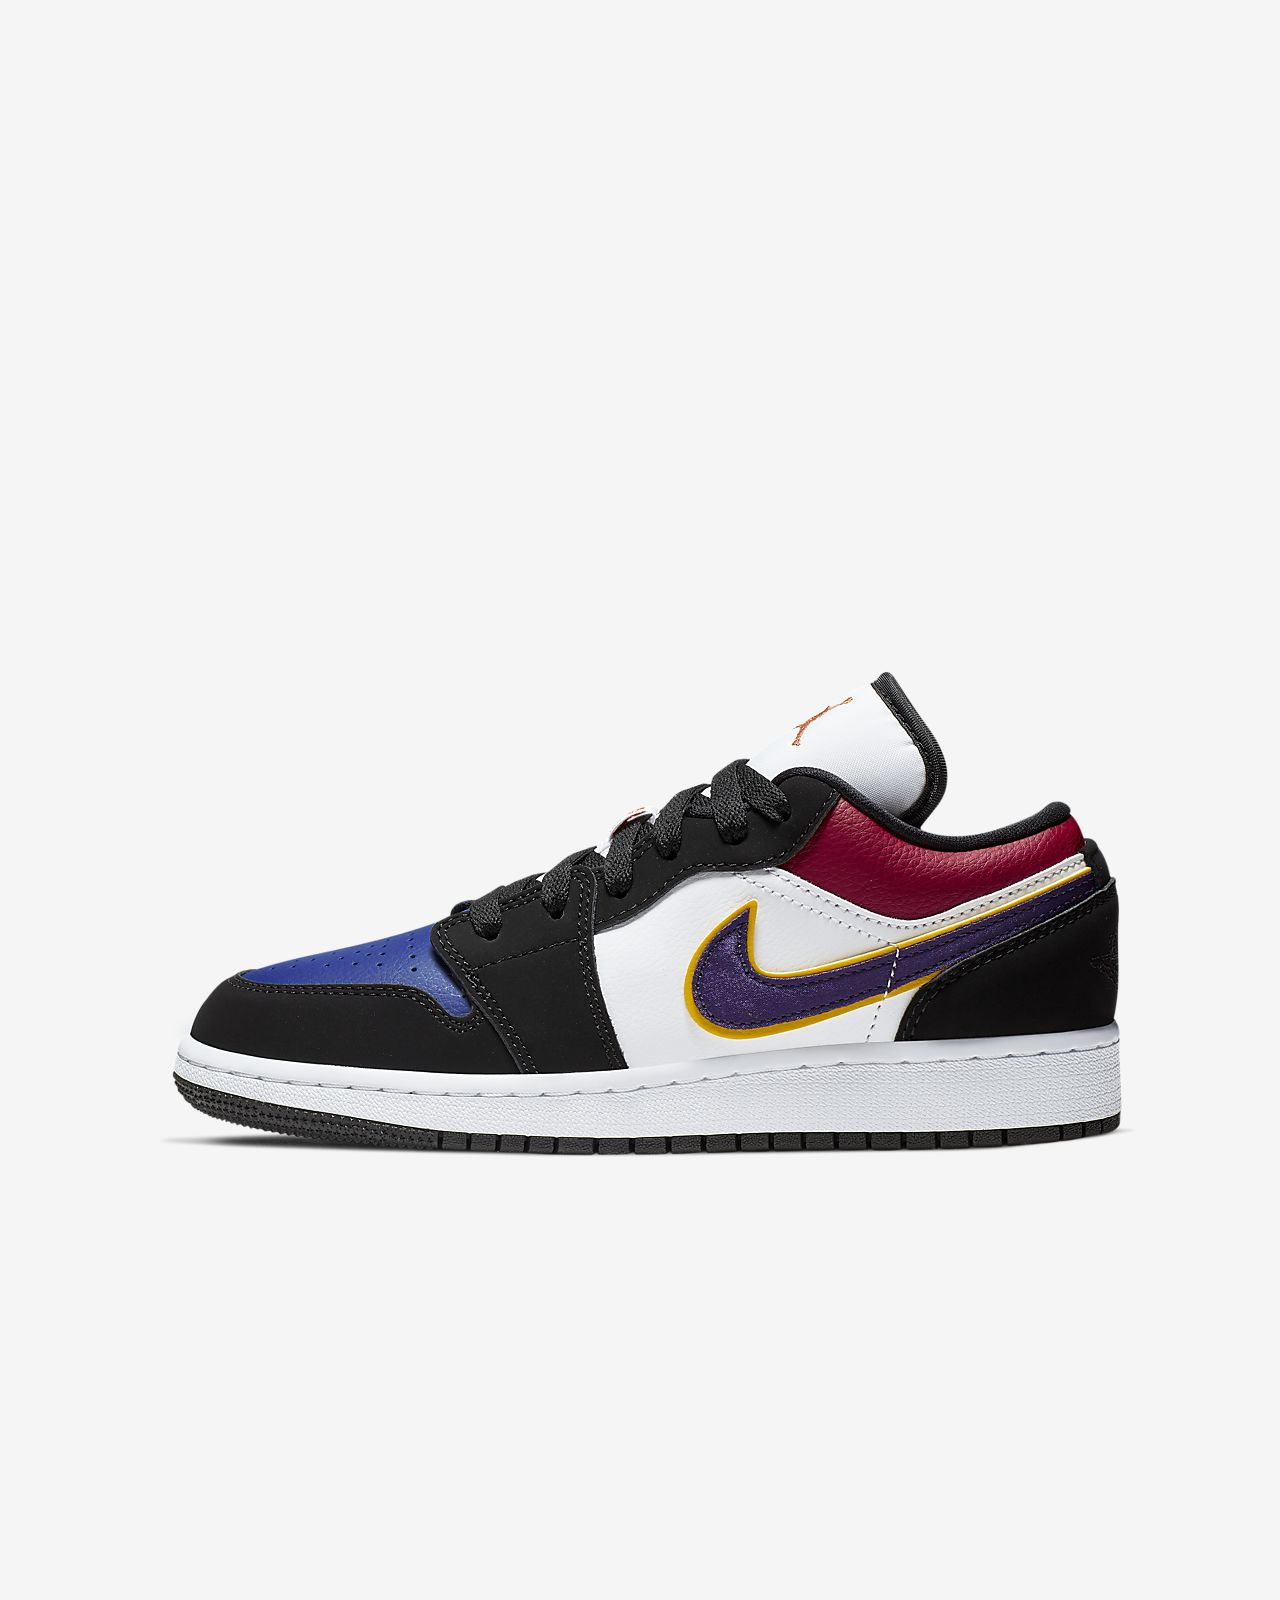 81a5503b4bc97 Air Jordan 1 Low Big Kids' Shoe. Nike.com